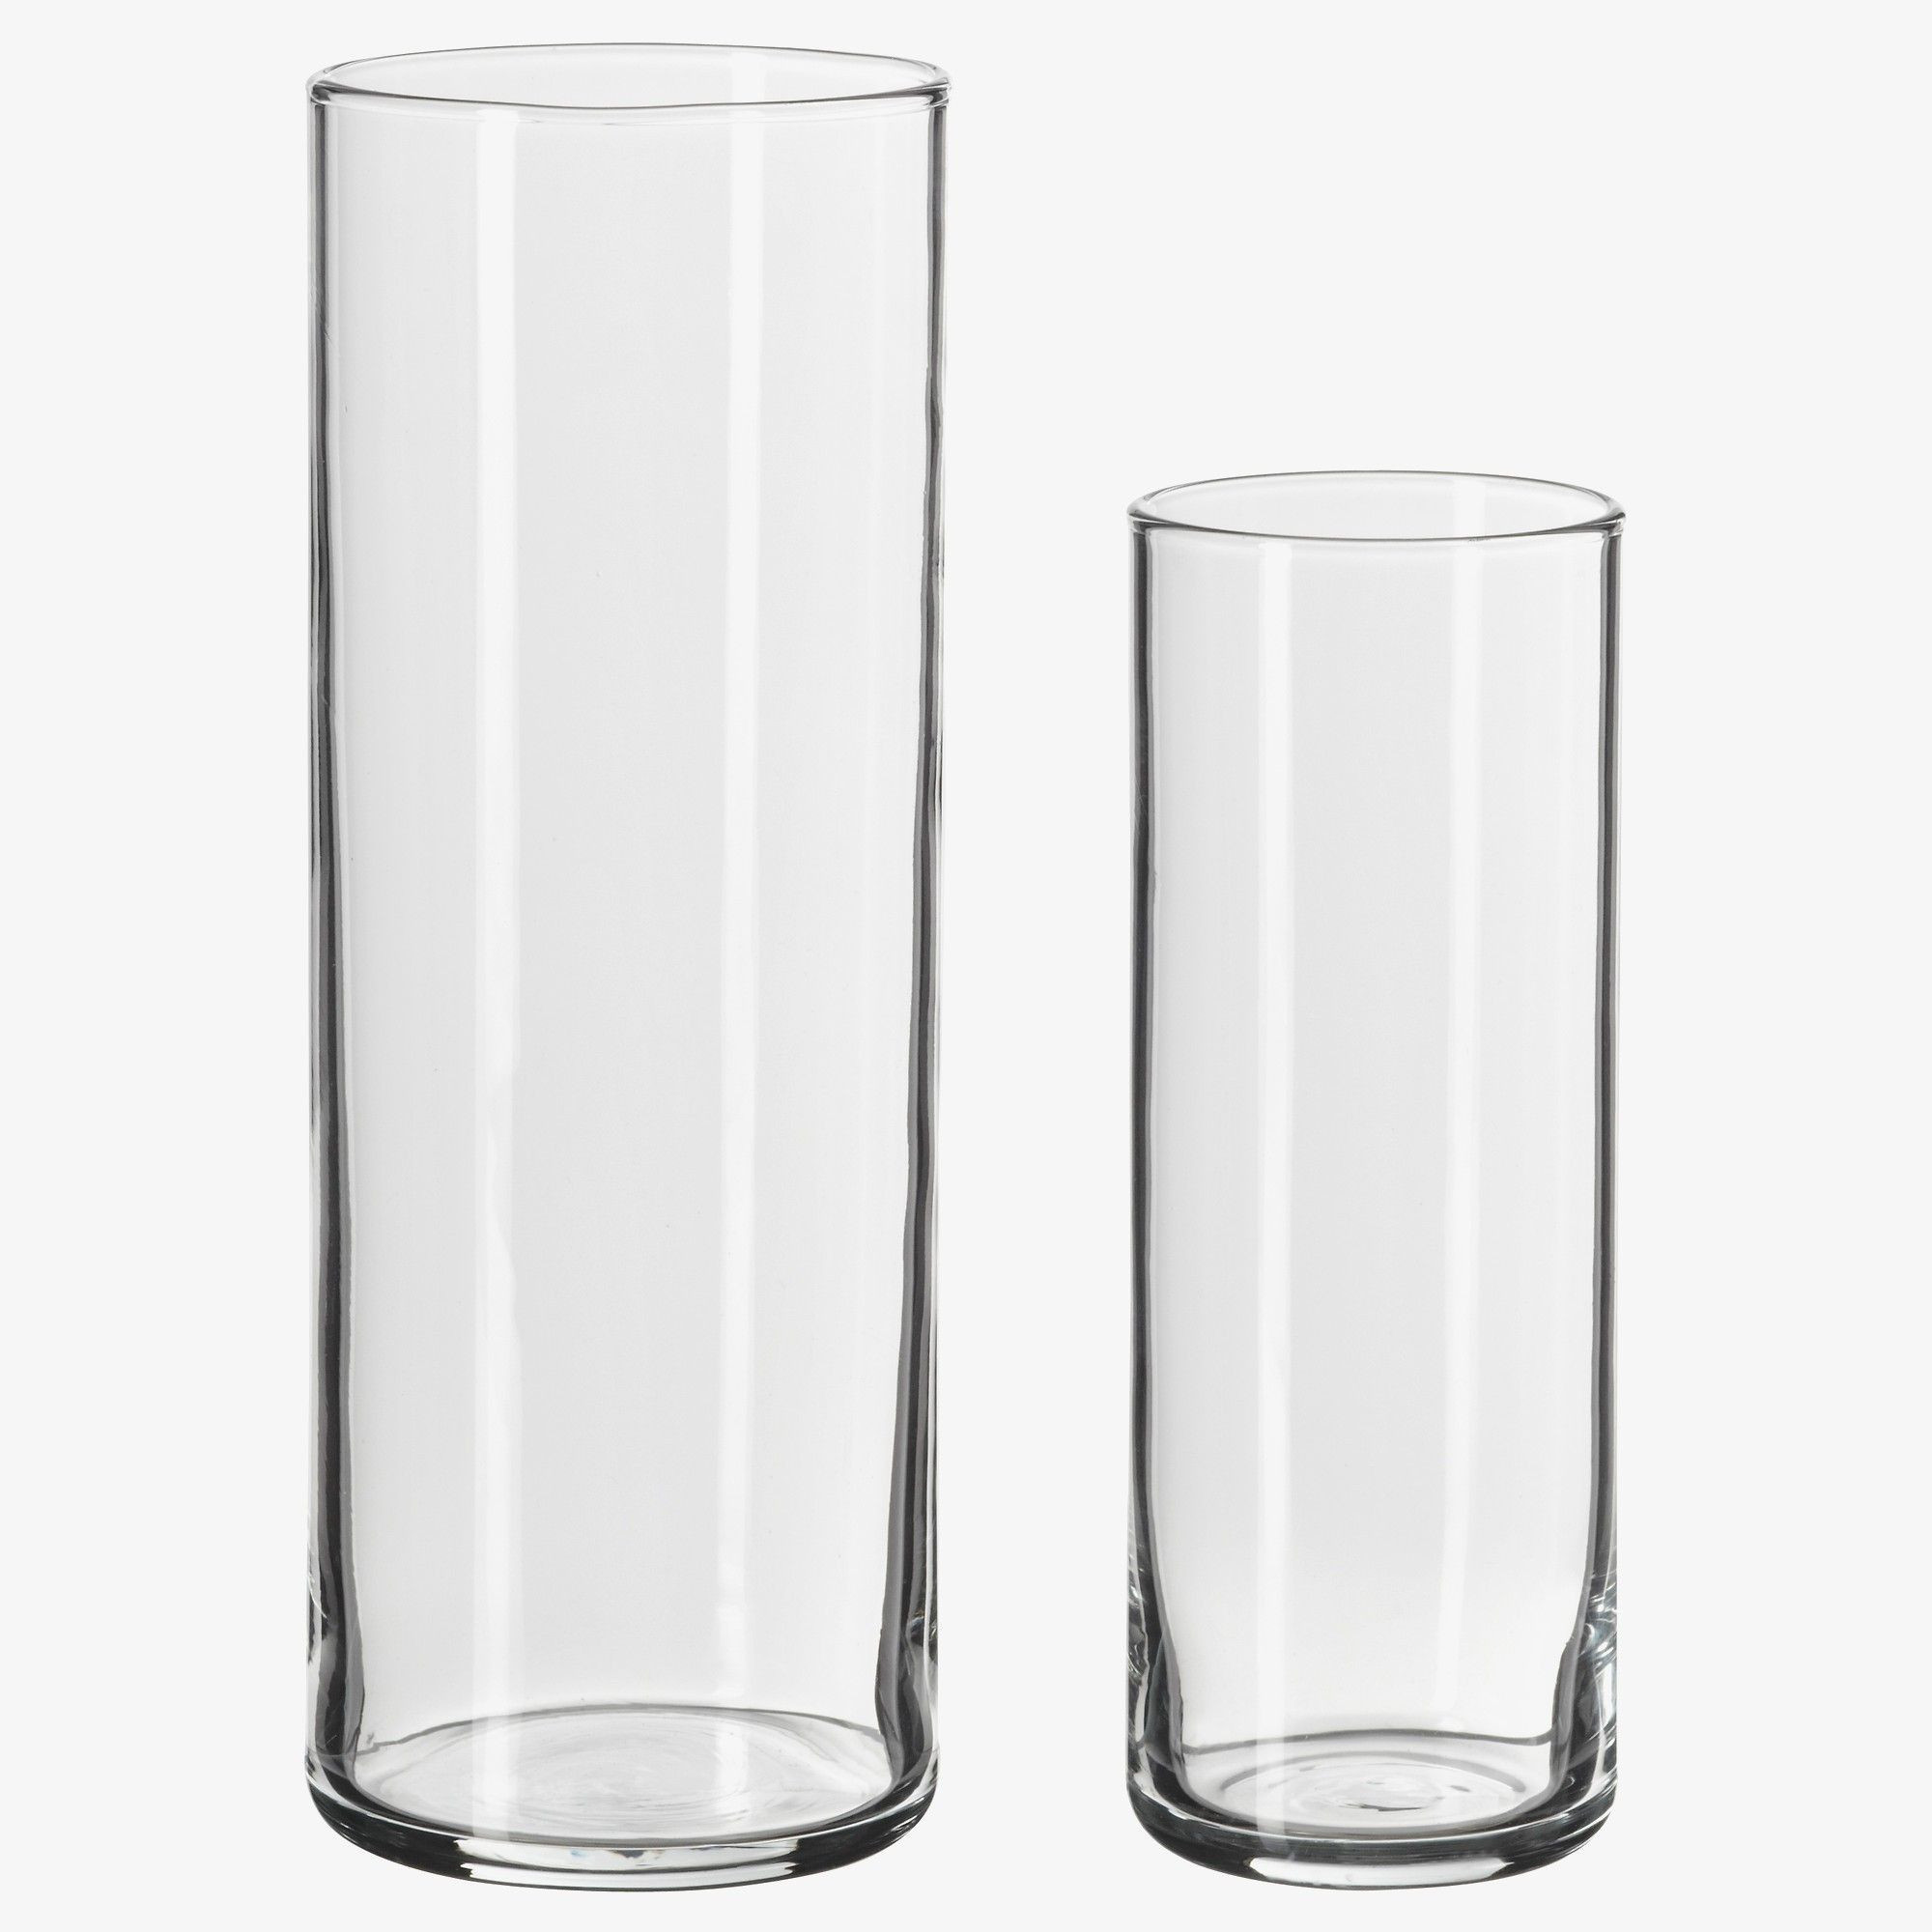 Clear Plastic Cylinder Vases wholesale Of 40 Glass Vases Bulk the Weekly World Intended for Clear Glass Tv Stand Charming New Design Ikea Mantel Great Pe S5h